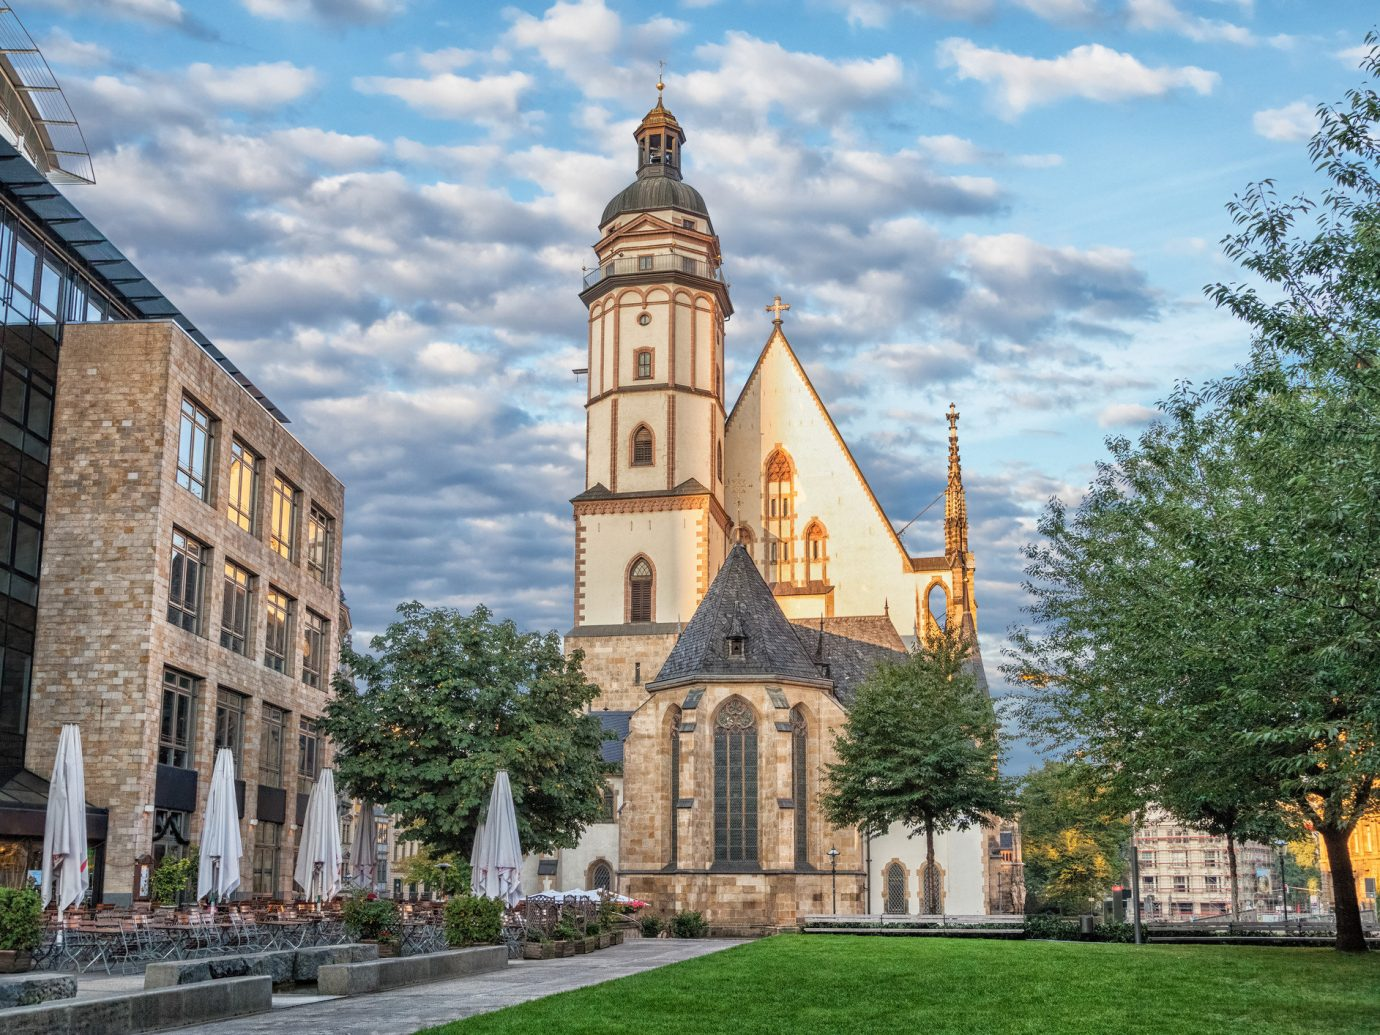 Berlin Germany Munich Trip Ideas landmark building sky steeple tree City estate place of worship basilica tourist attraction cathedral medieval architecture Church real estate facade spire historic site château chapel university plaza